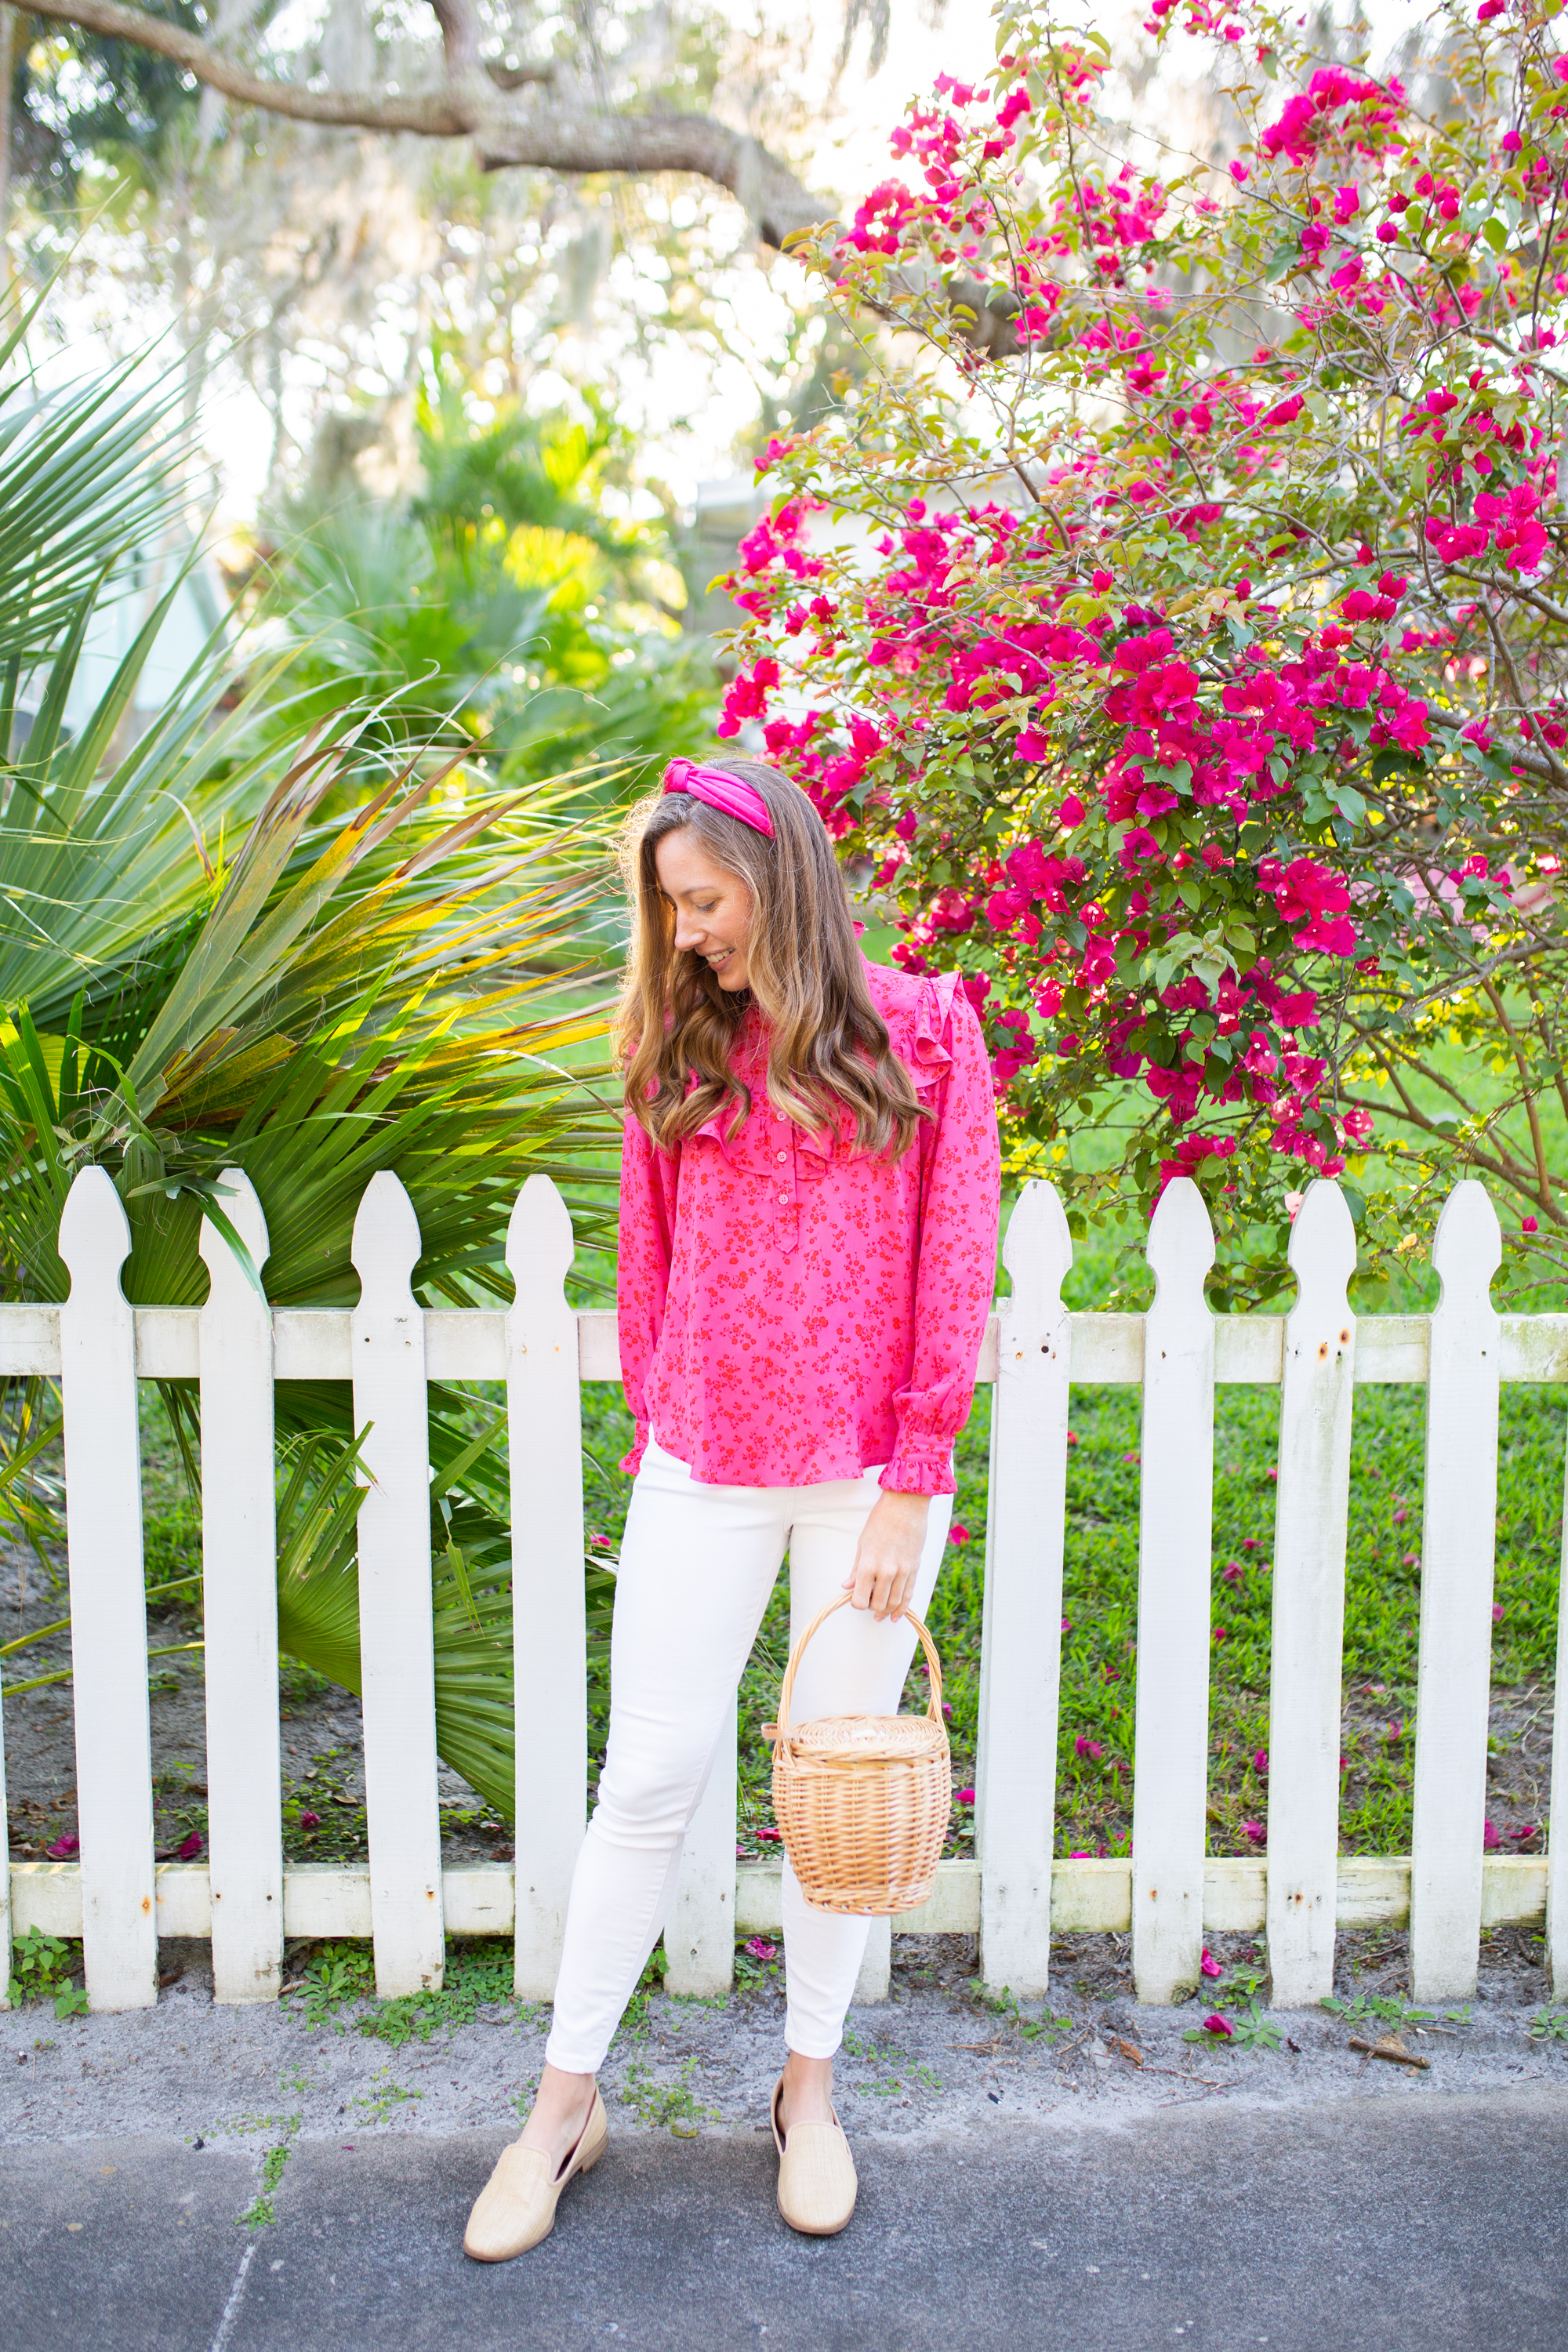 Floral Tops for Spring / Spring Tops for Women / Ruffle Top / Long Sleeve Blouse / White Jeans / Spring Outfit Inspiration / Floral Tops and Jeans / Floral Tops Outfit - Sunshine Style, A Florida Fashion blog by Katie